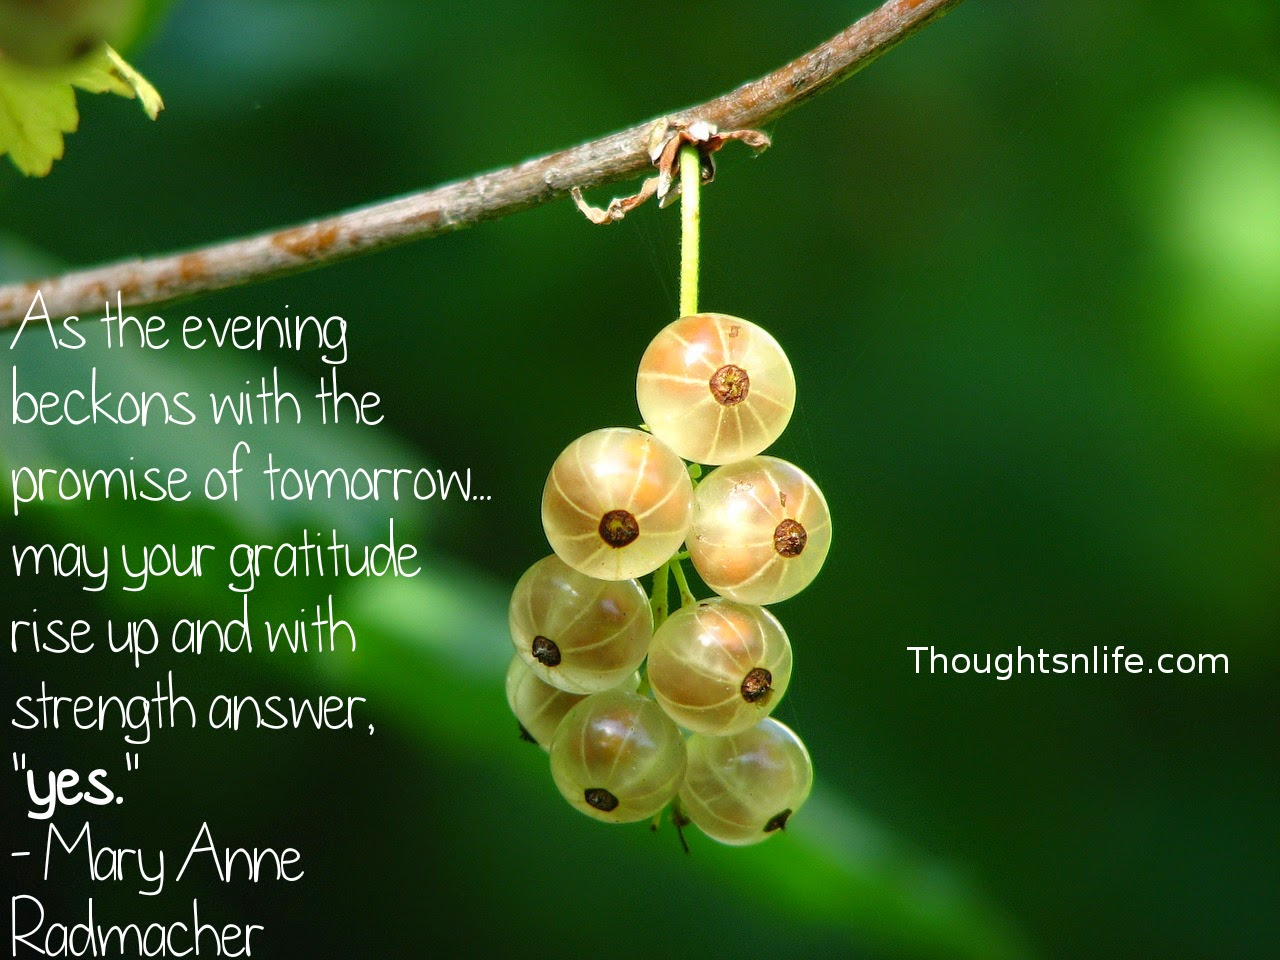 "Thoughtsnlife.com: As the evening beckons with the promise of tomorrow... may your gratitude rise up and with strength answer, ""yes."" - Mary Anne Radmacher"